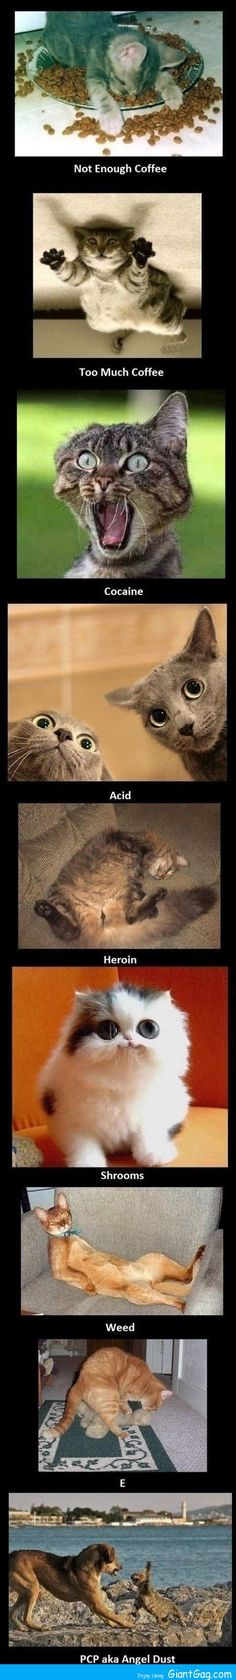 Cats on drugs STEP 1